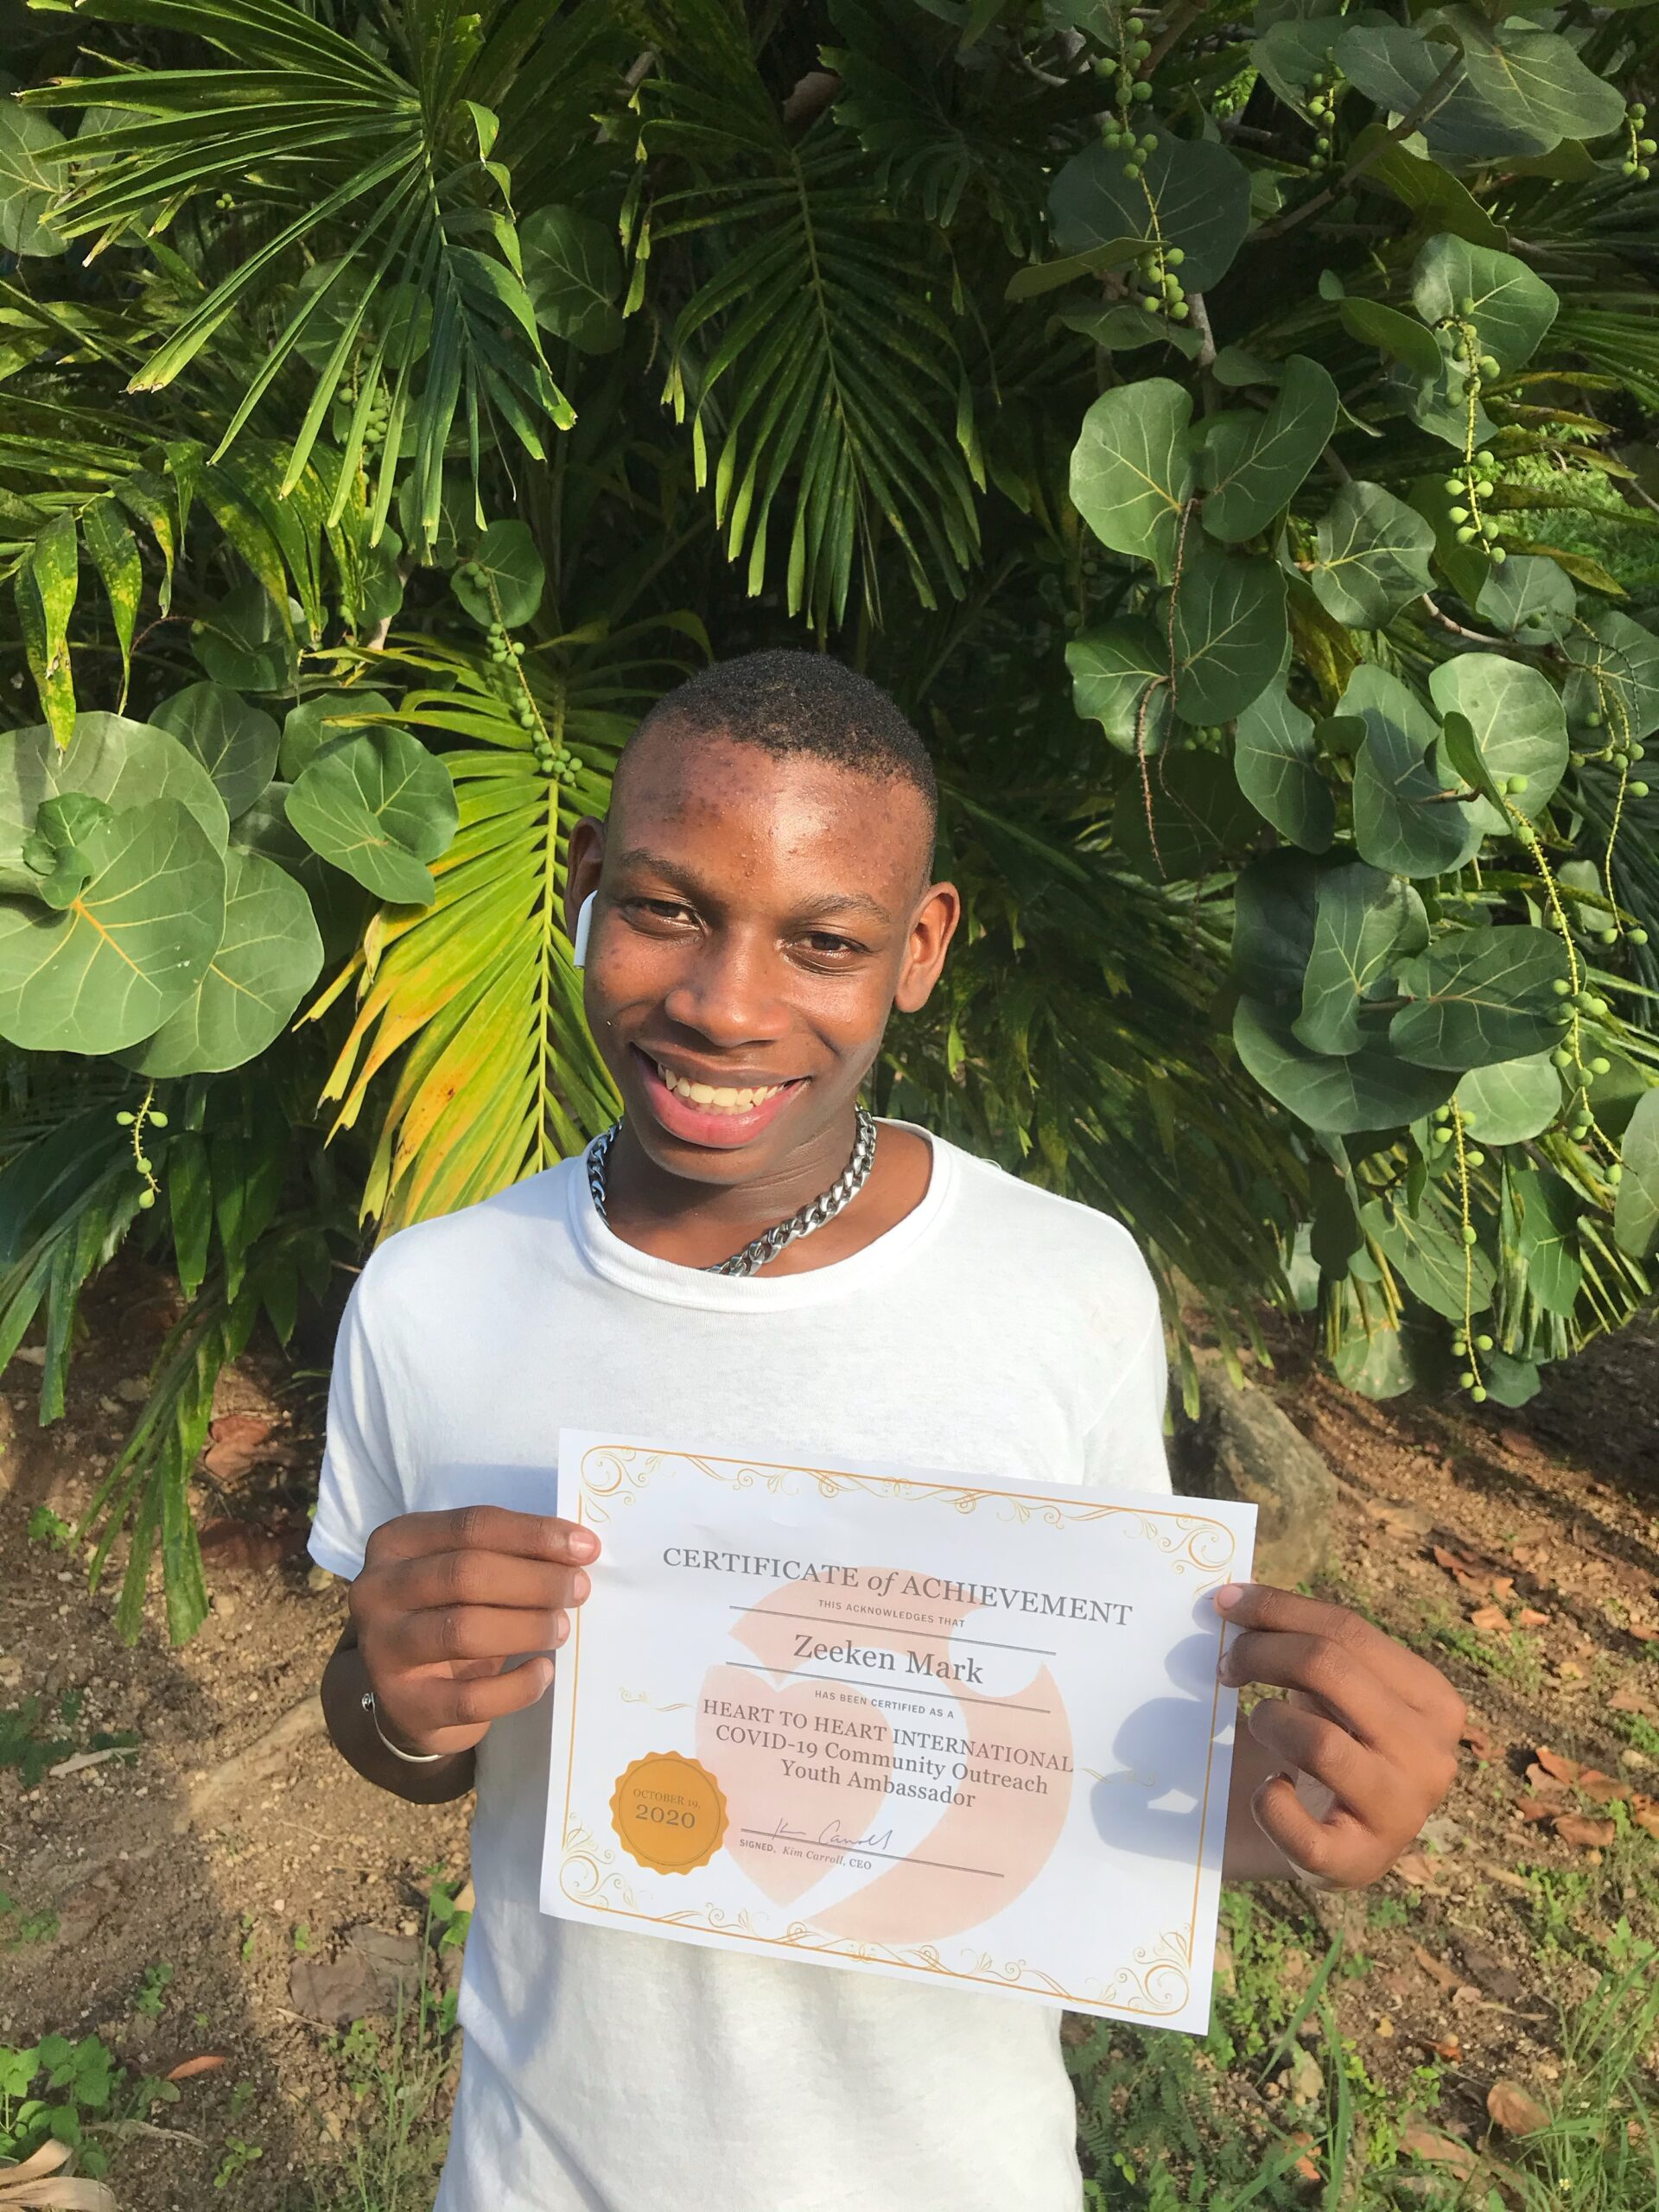 Project Promise Caterpillars Become Certified Covid-19 Youth Ambassadors